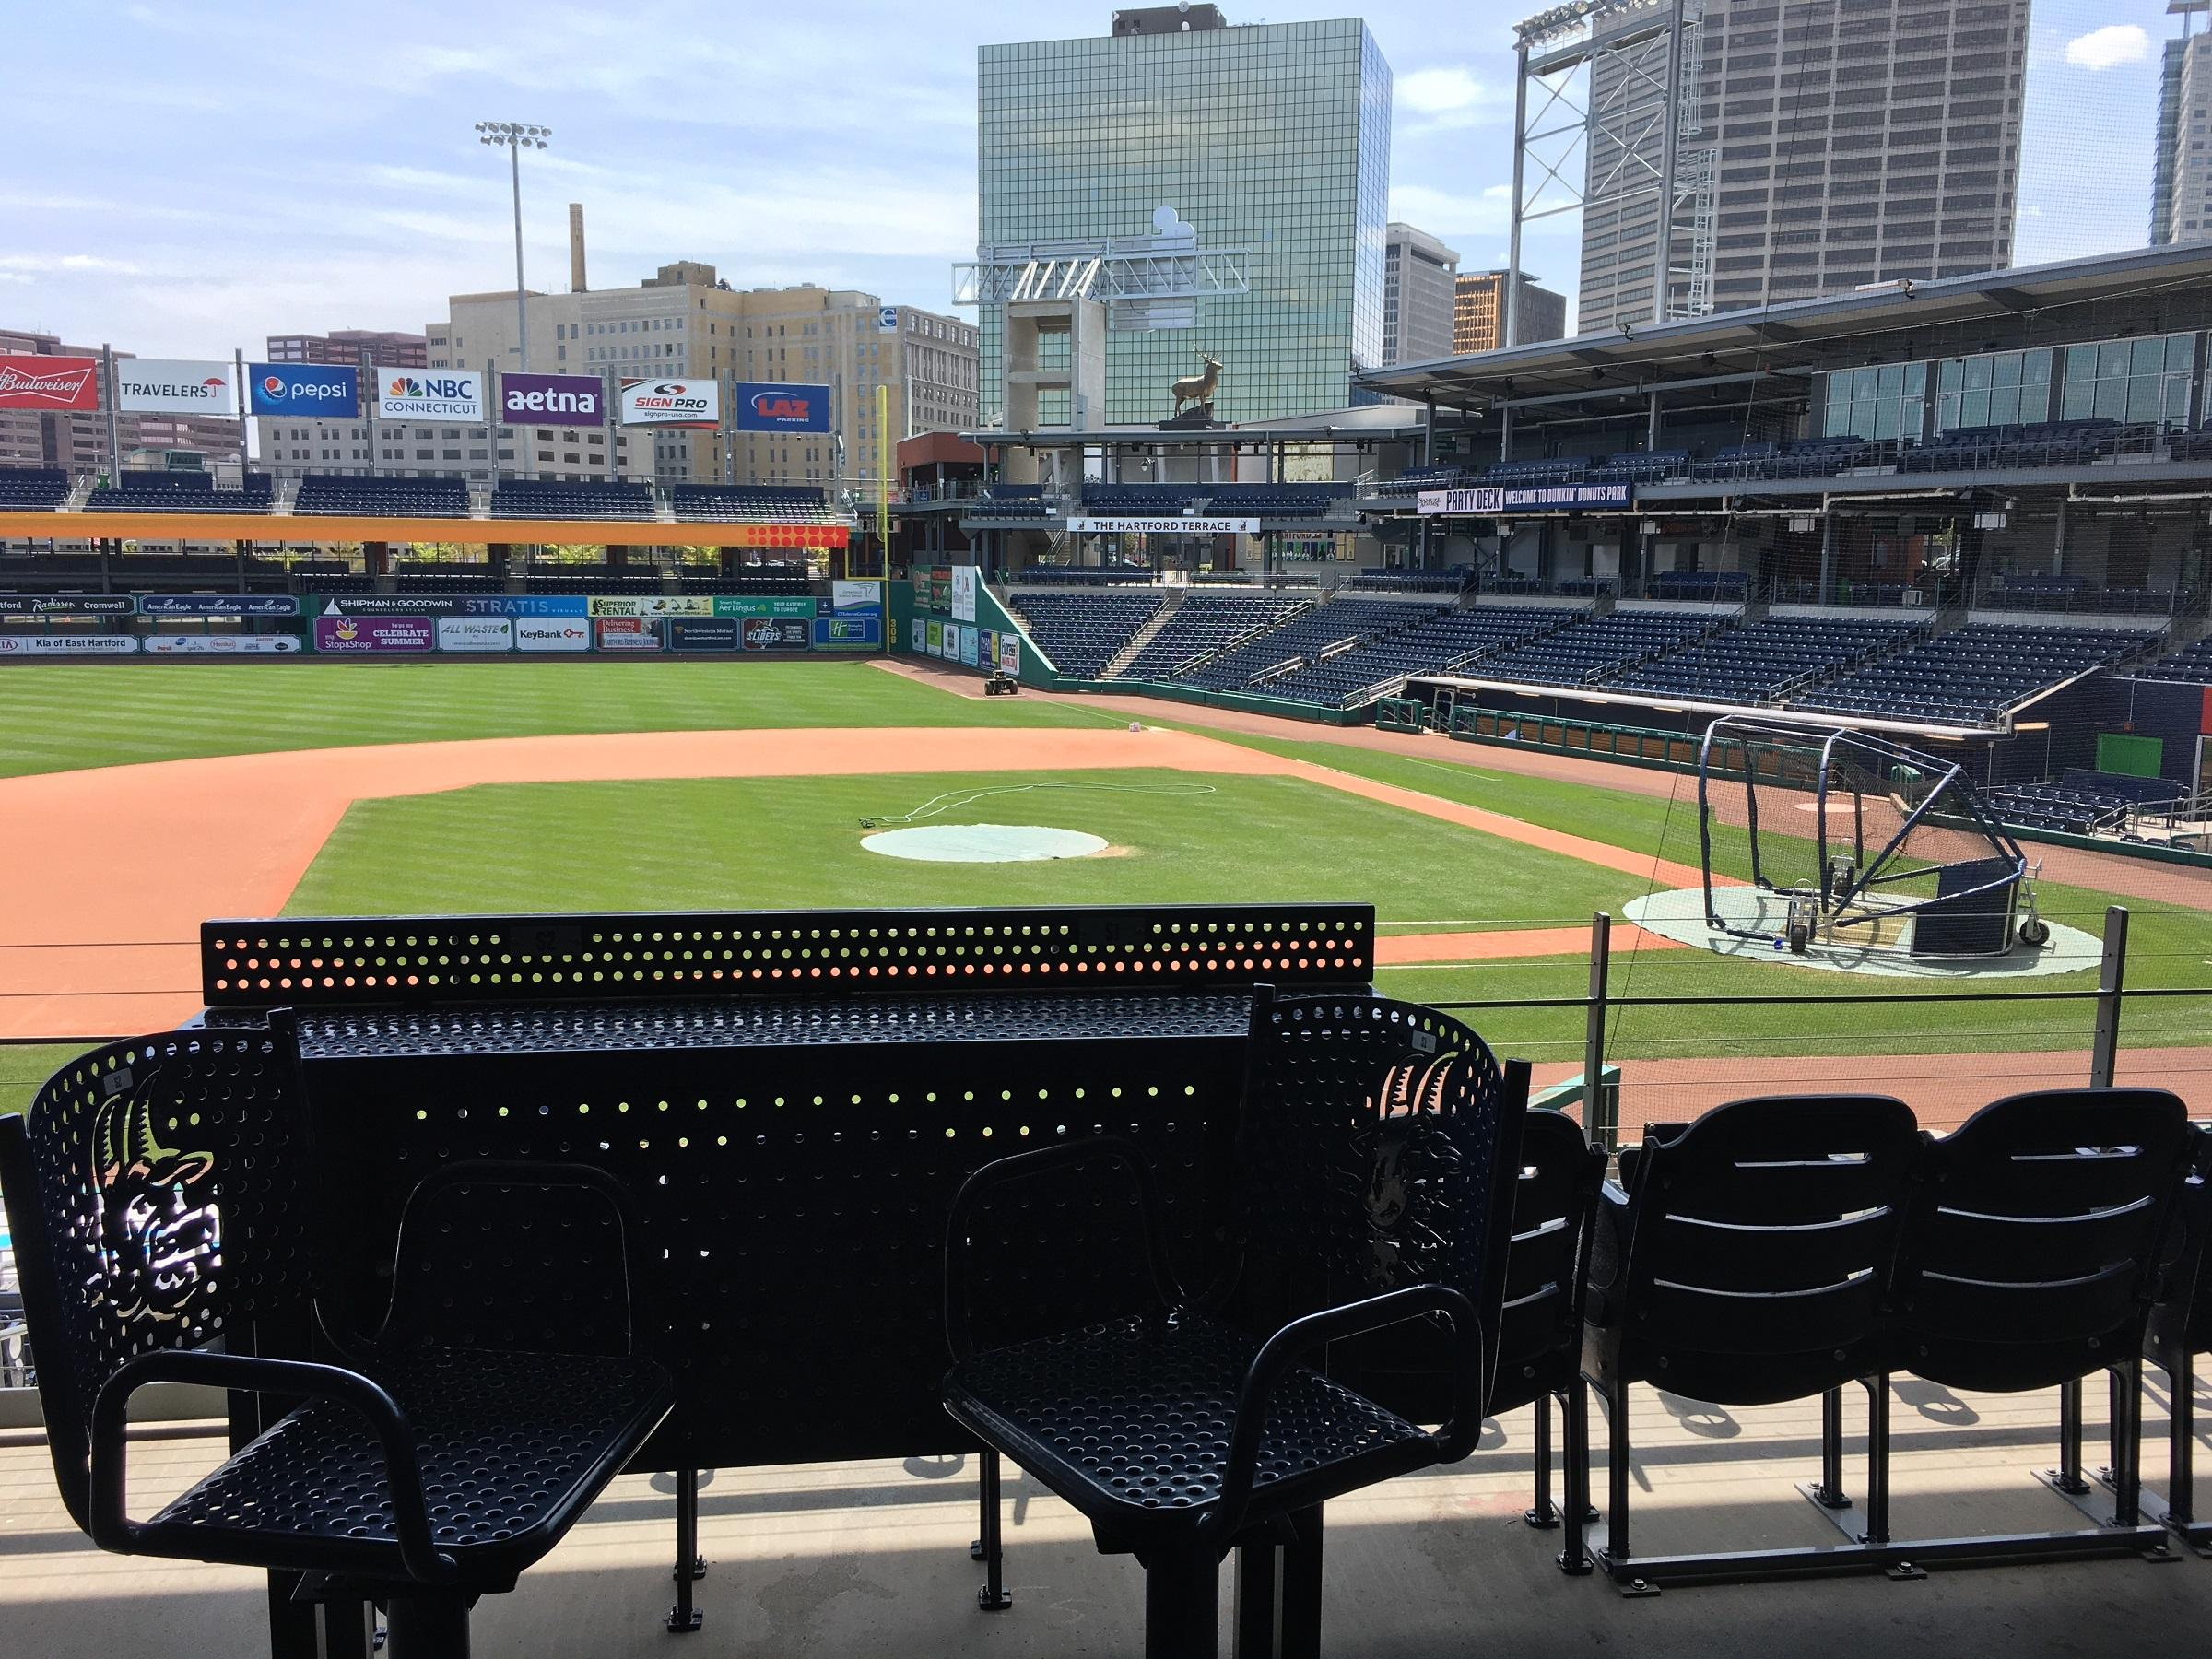 Dunkin' Donuts Park in Hartford, Connecticut. Photo by Carrie Healy for NEPR